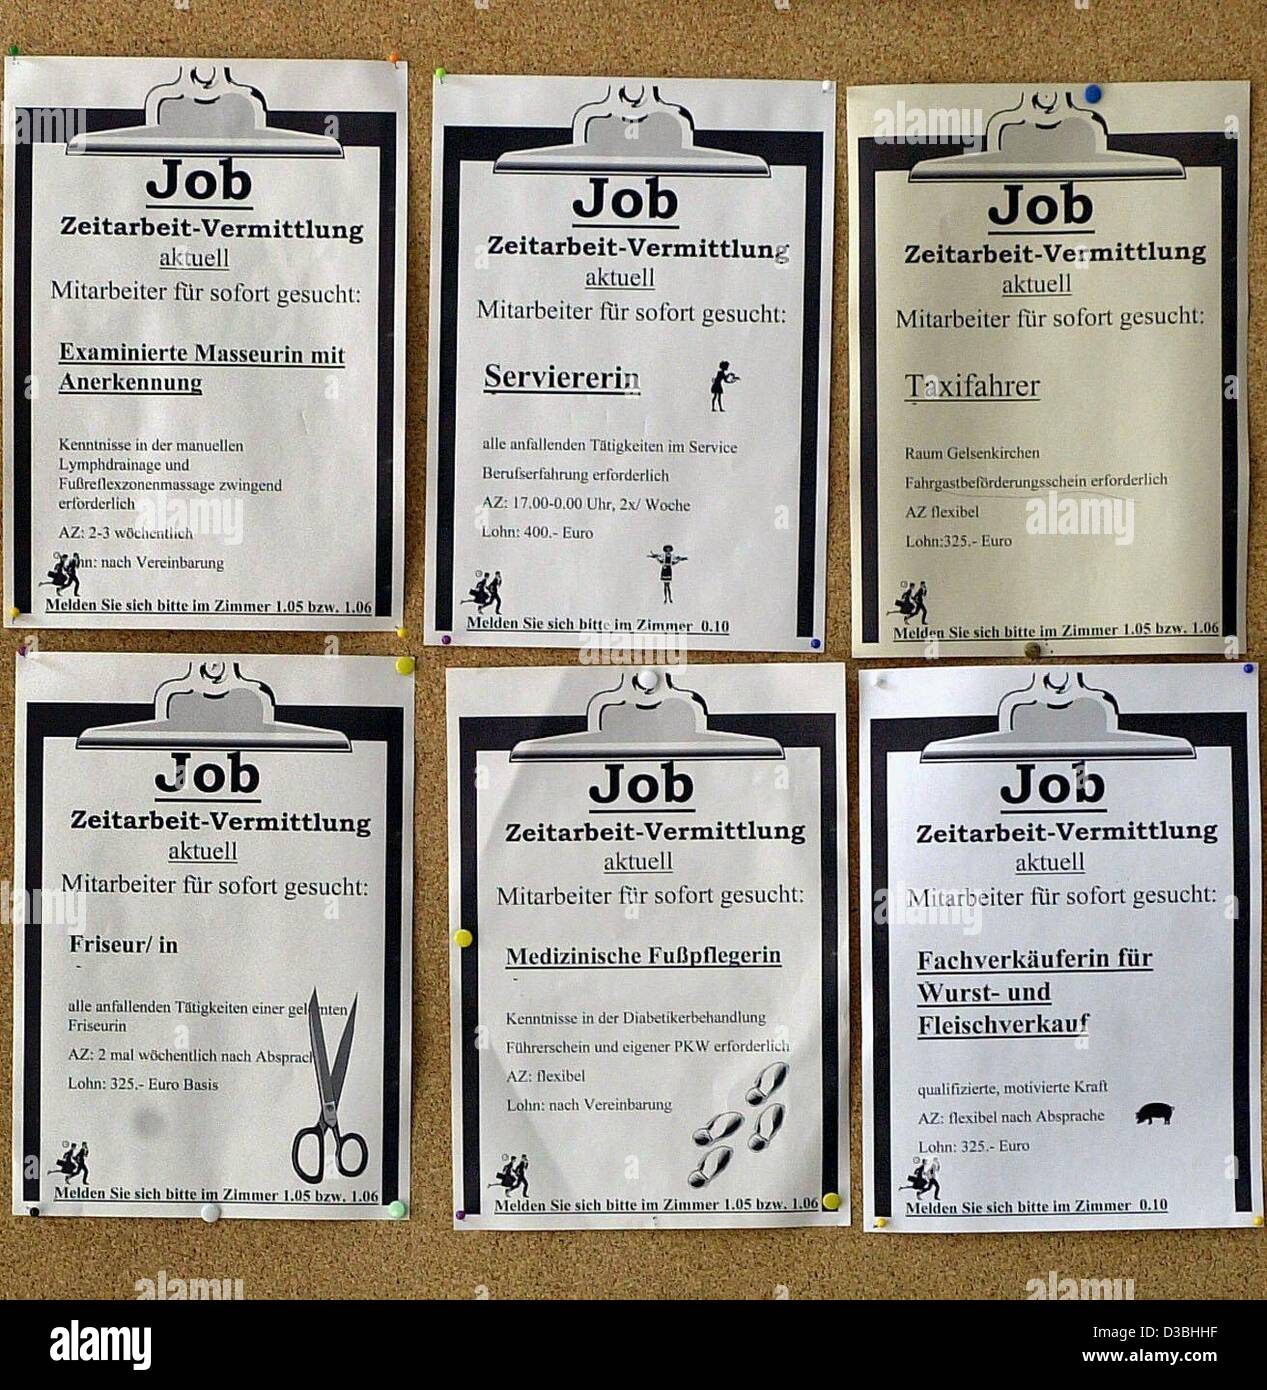 dpa) - A notice board for vacancies advertises temping jobs in the ...